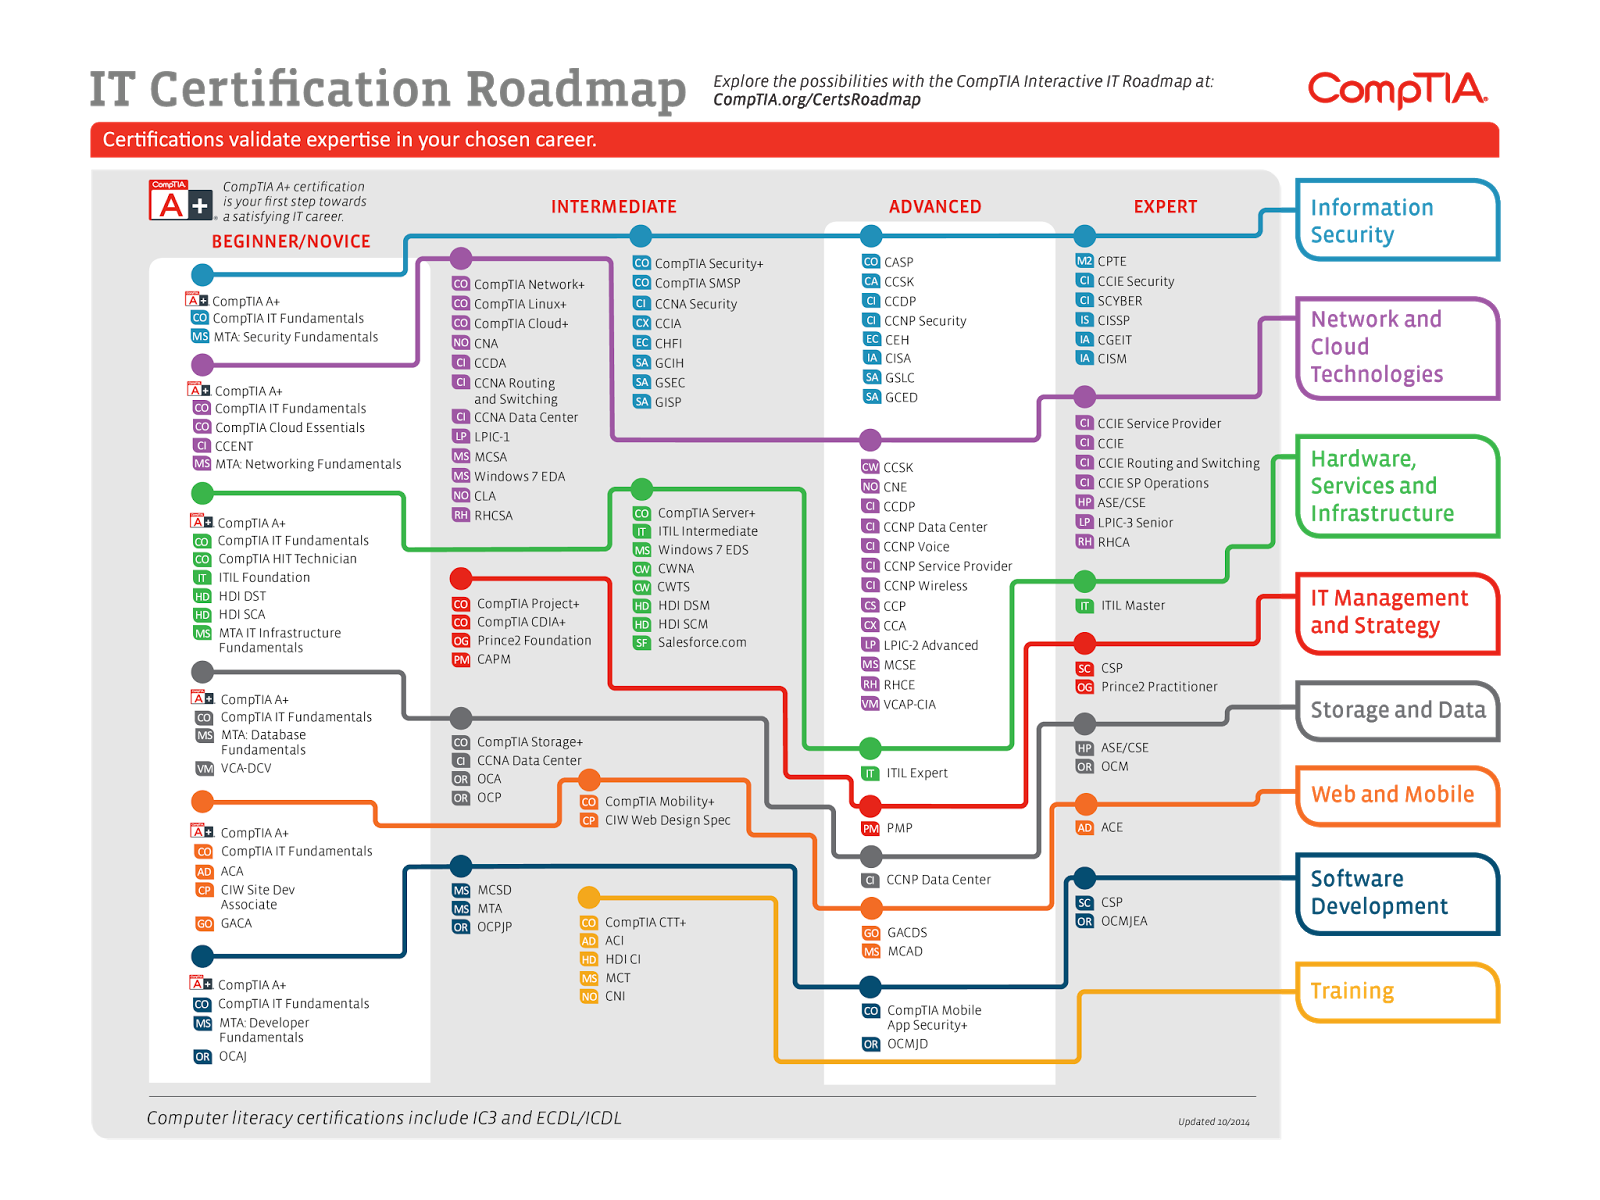 Cisncu it certification roadmap it certification roadmap posted by henry at wednesday june 17 2015 1betcityfo Image collections